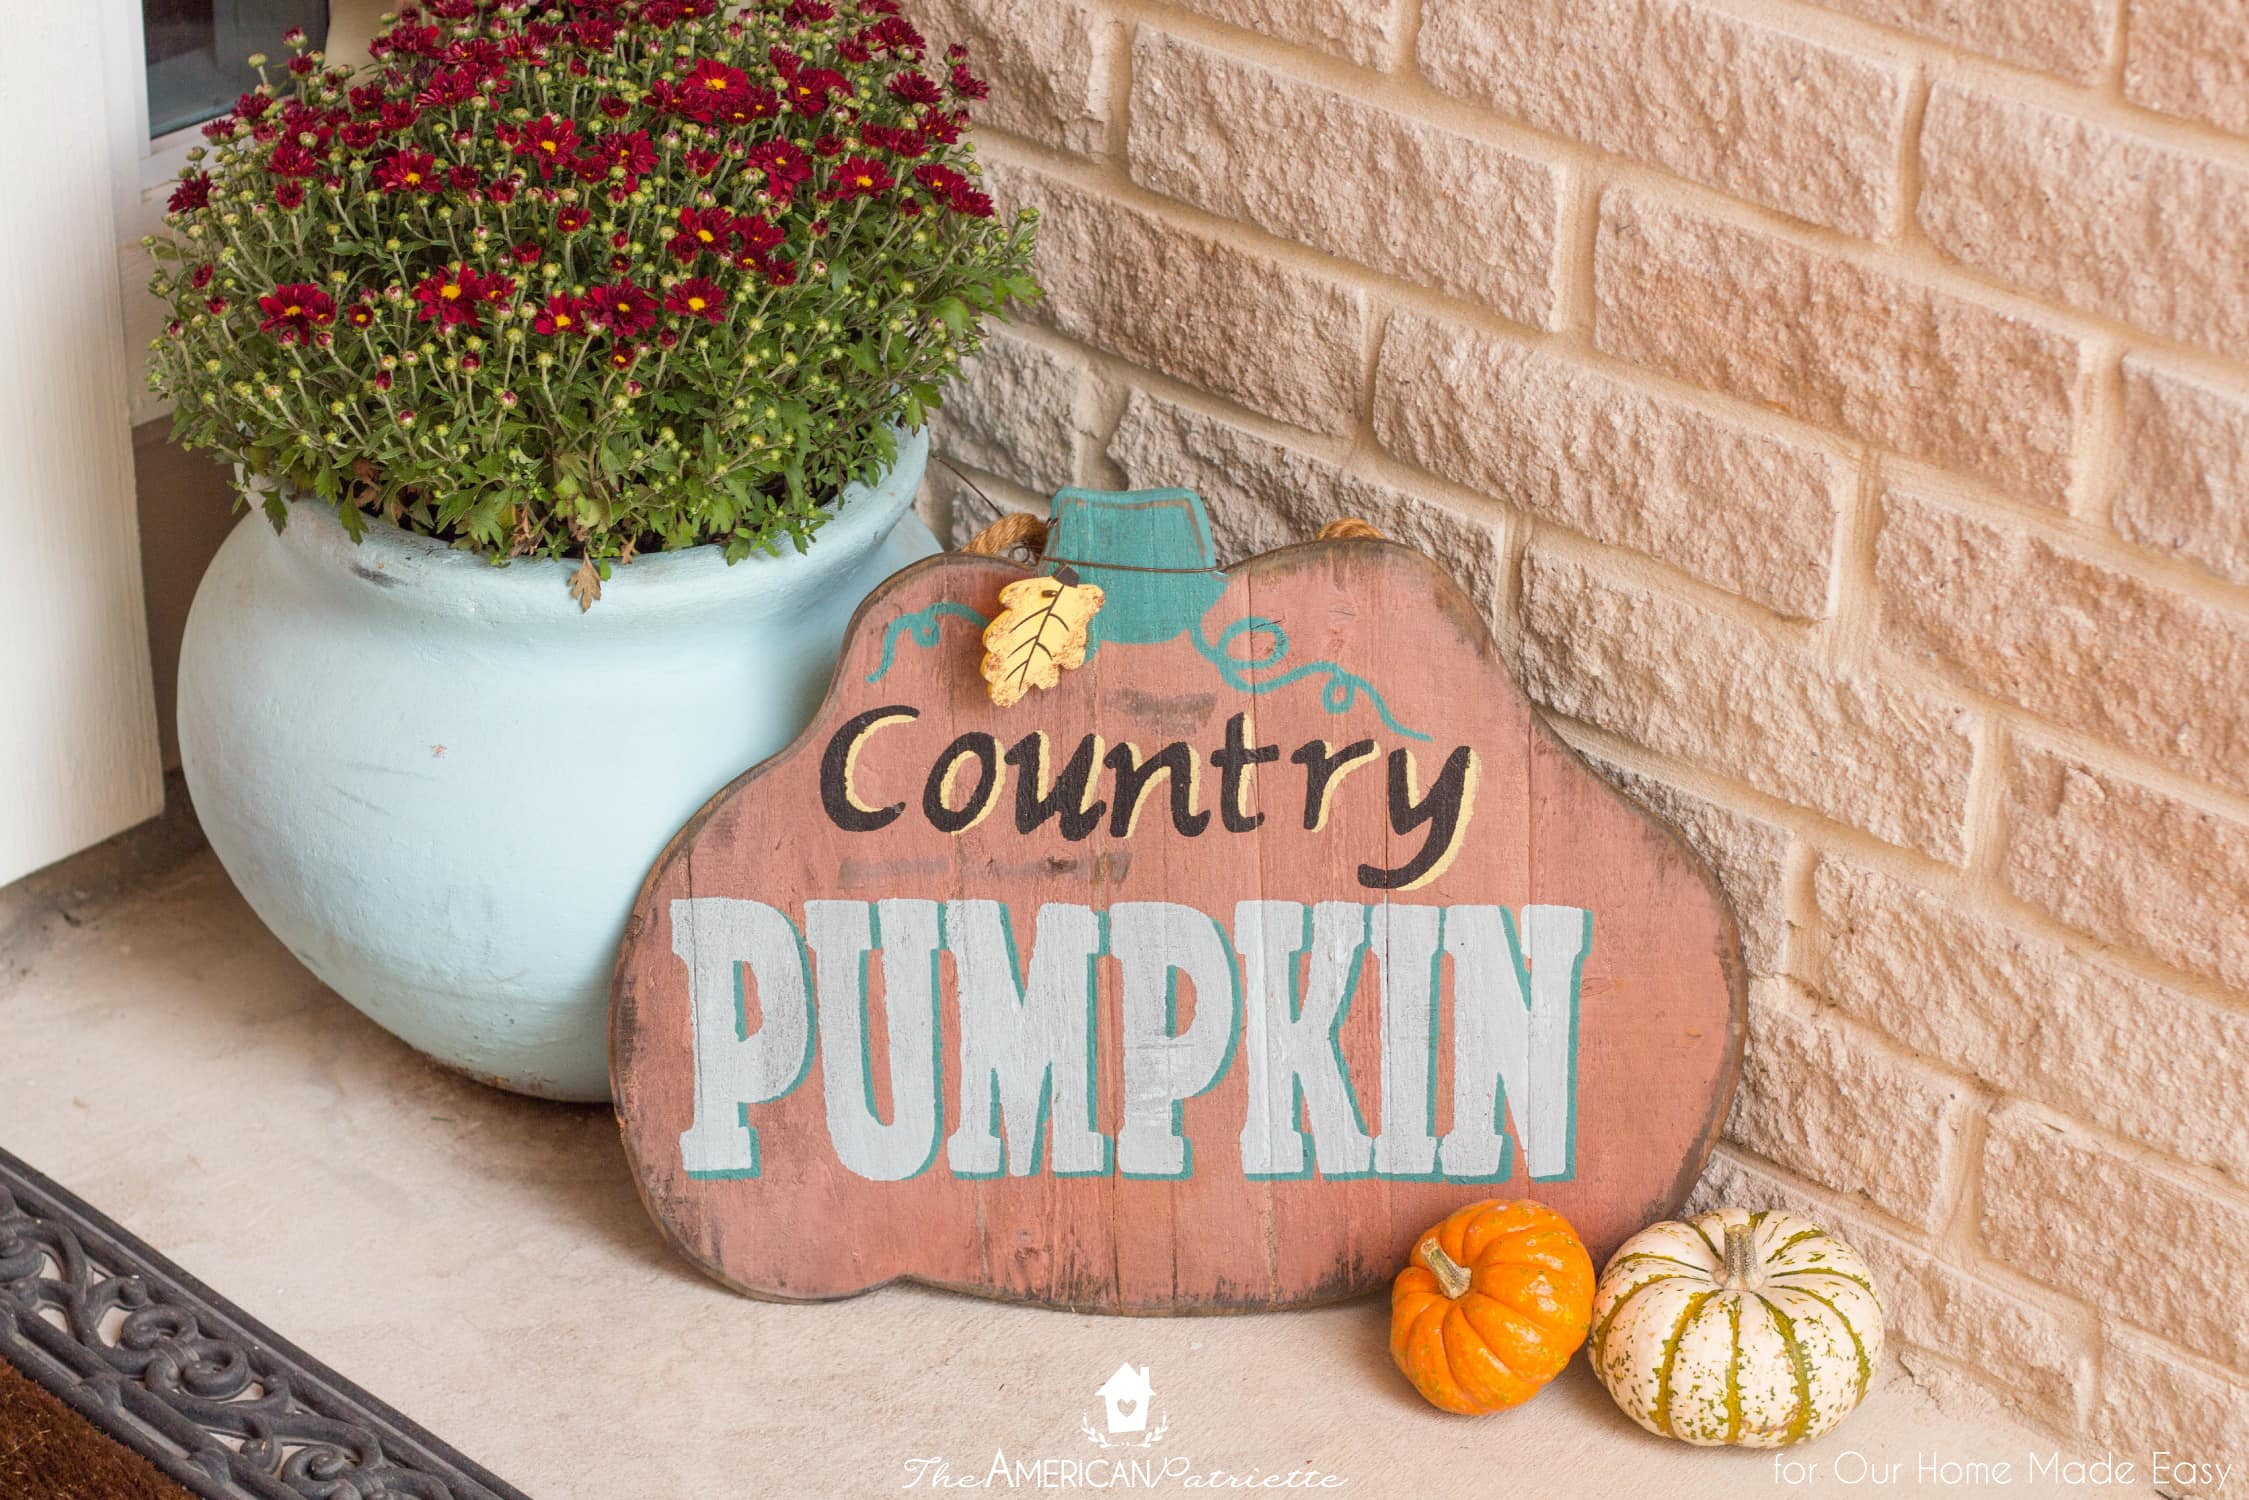 Colorful signs like this country pumpkin sign is a great way to add fun color to your porch